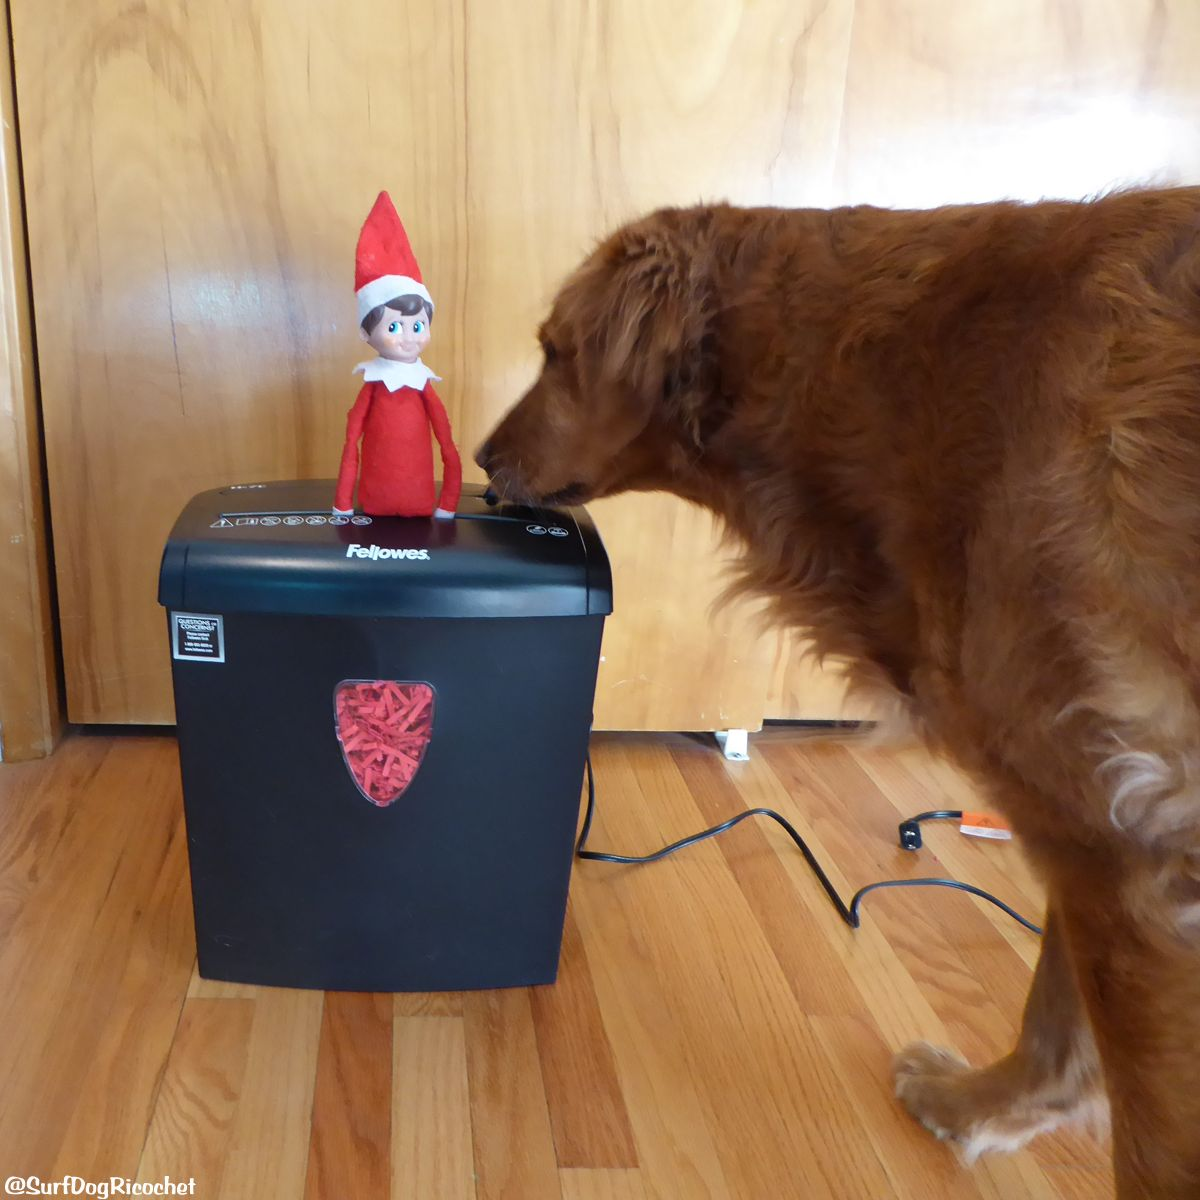 Surf Dog Ricochet and the Elf on the Shelf